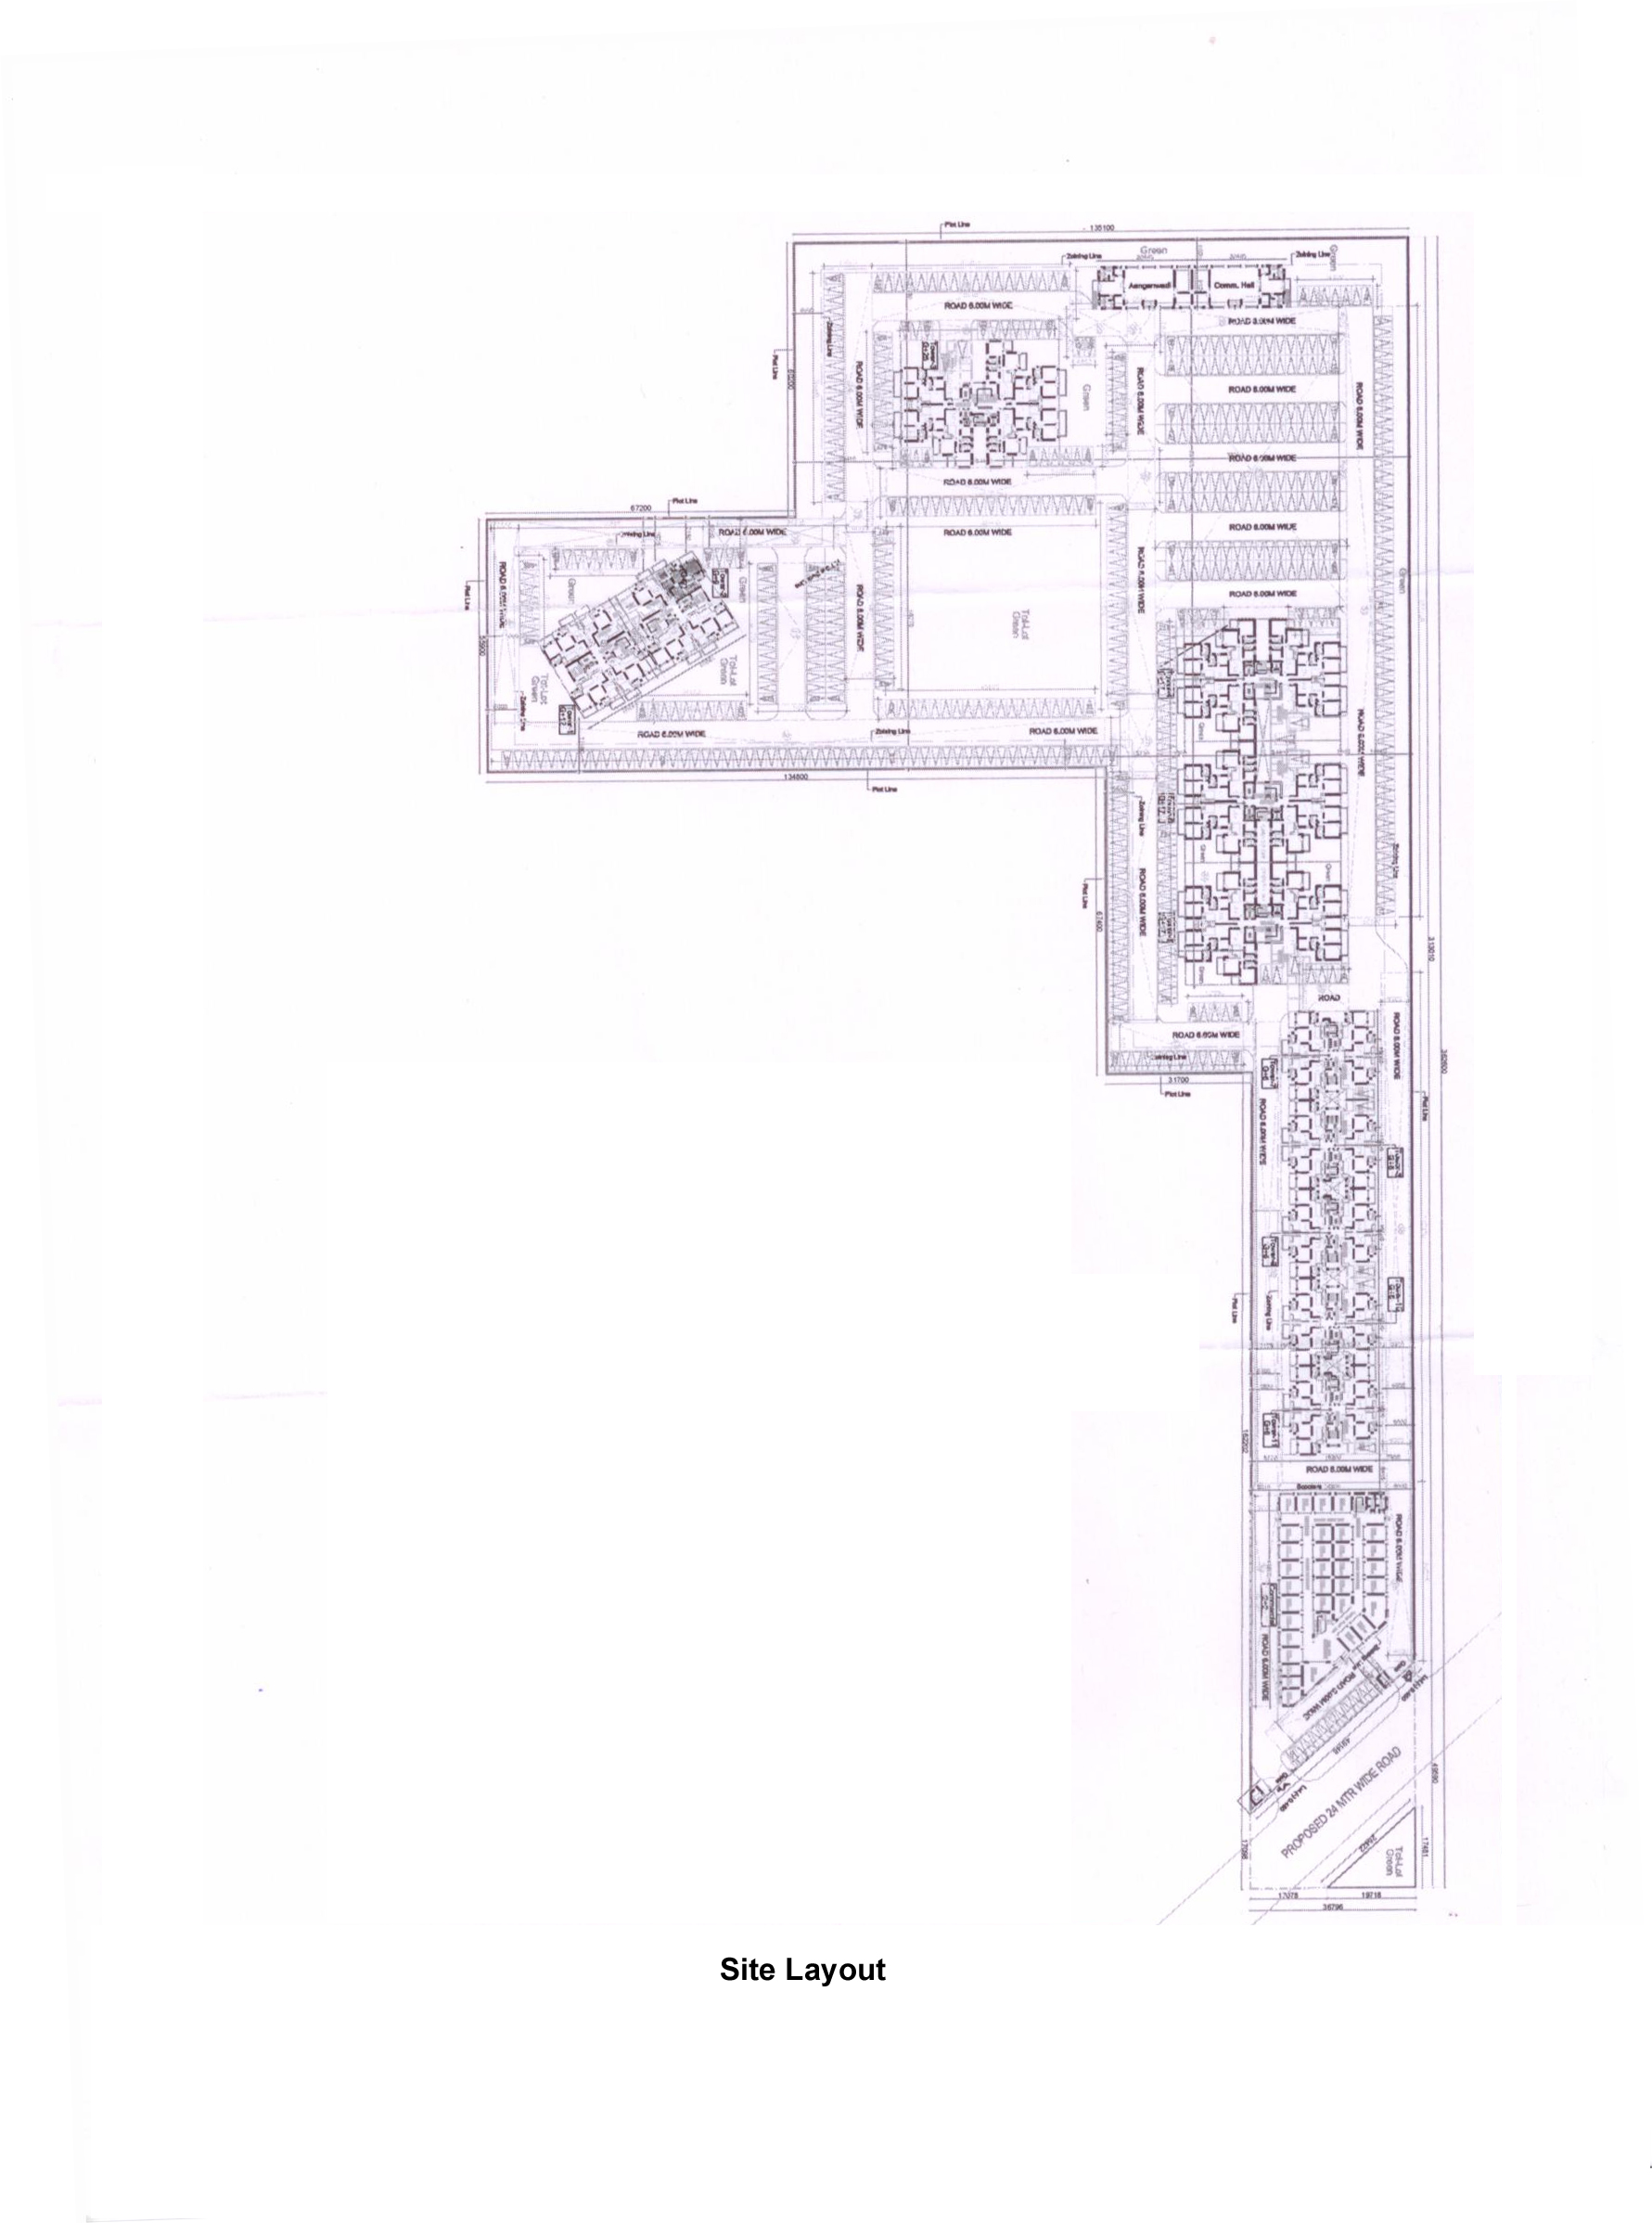 OSB Expressway Towers Site Plan